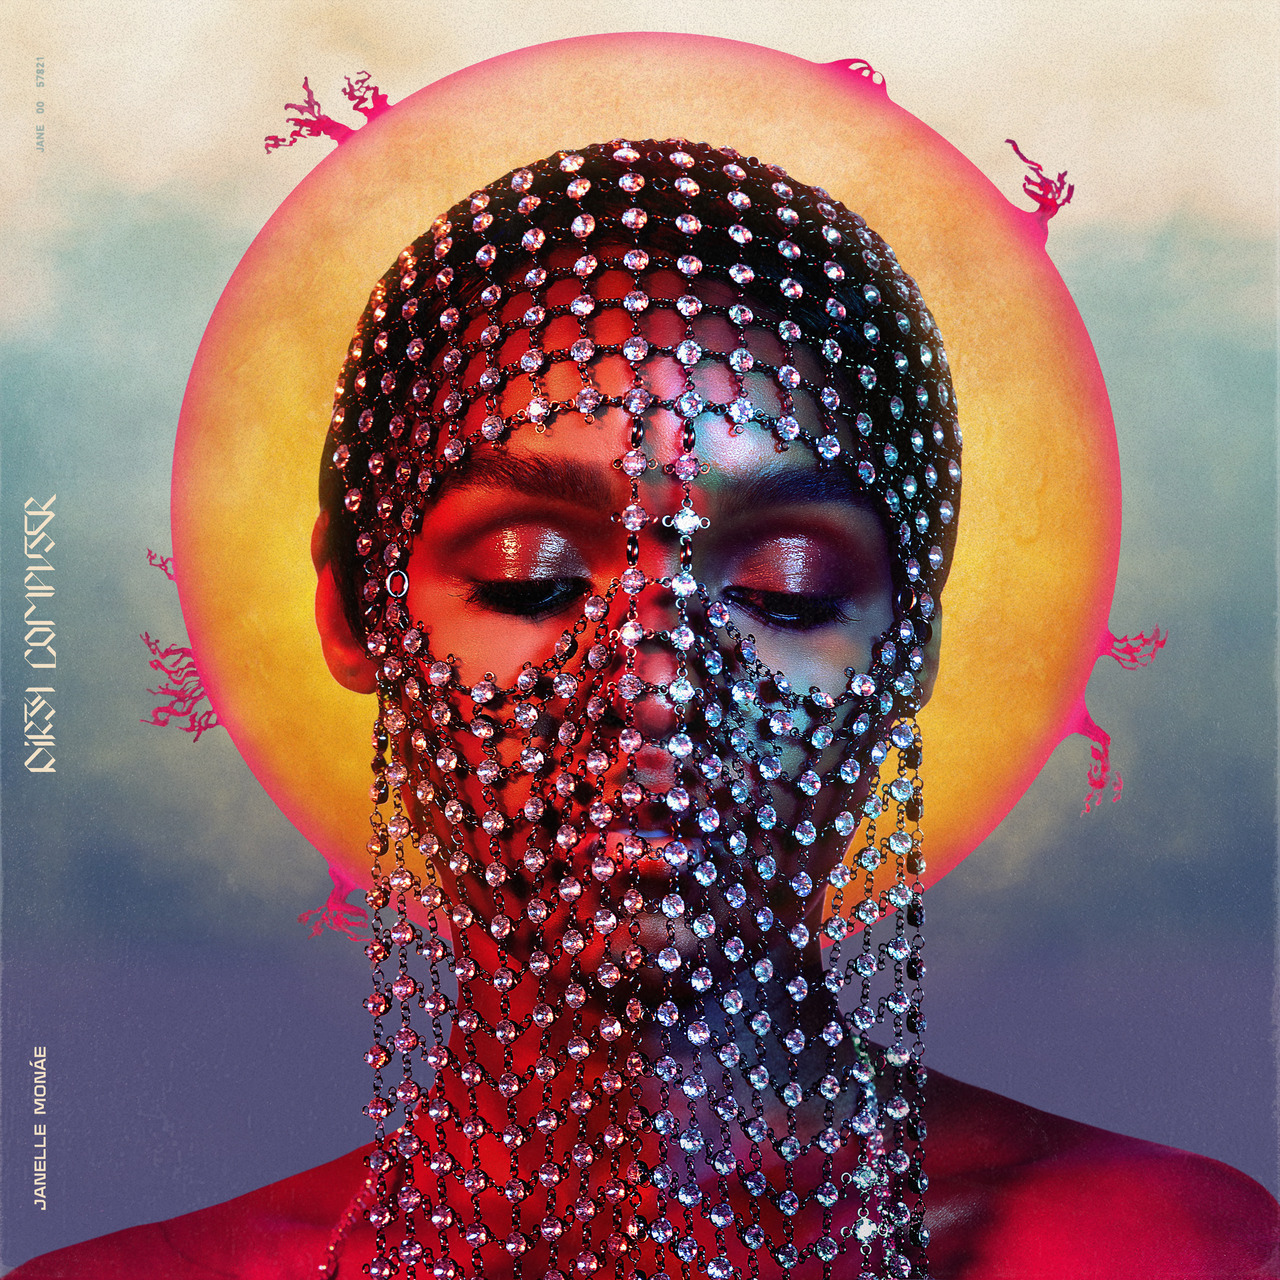 #DirtyComputer : Our Album Cover for Janelle Monae is out TODAY! So excited we got to work with such a major talent…and someone we personally LOVE! Thank you Ali Madelkorn for beautiful styling, Nikki Helms for hair and Jessica Smalls for Make up!